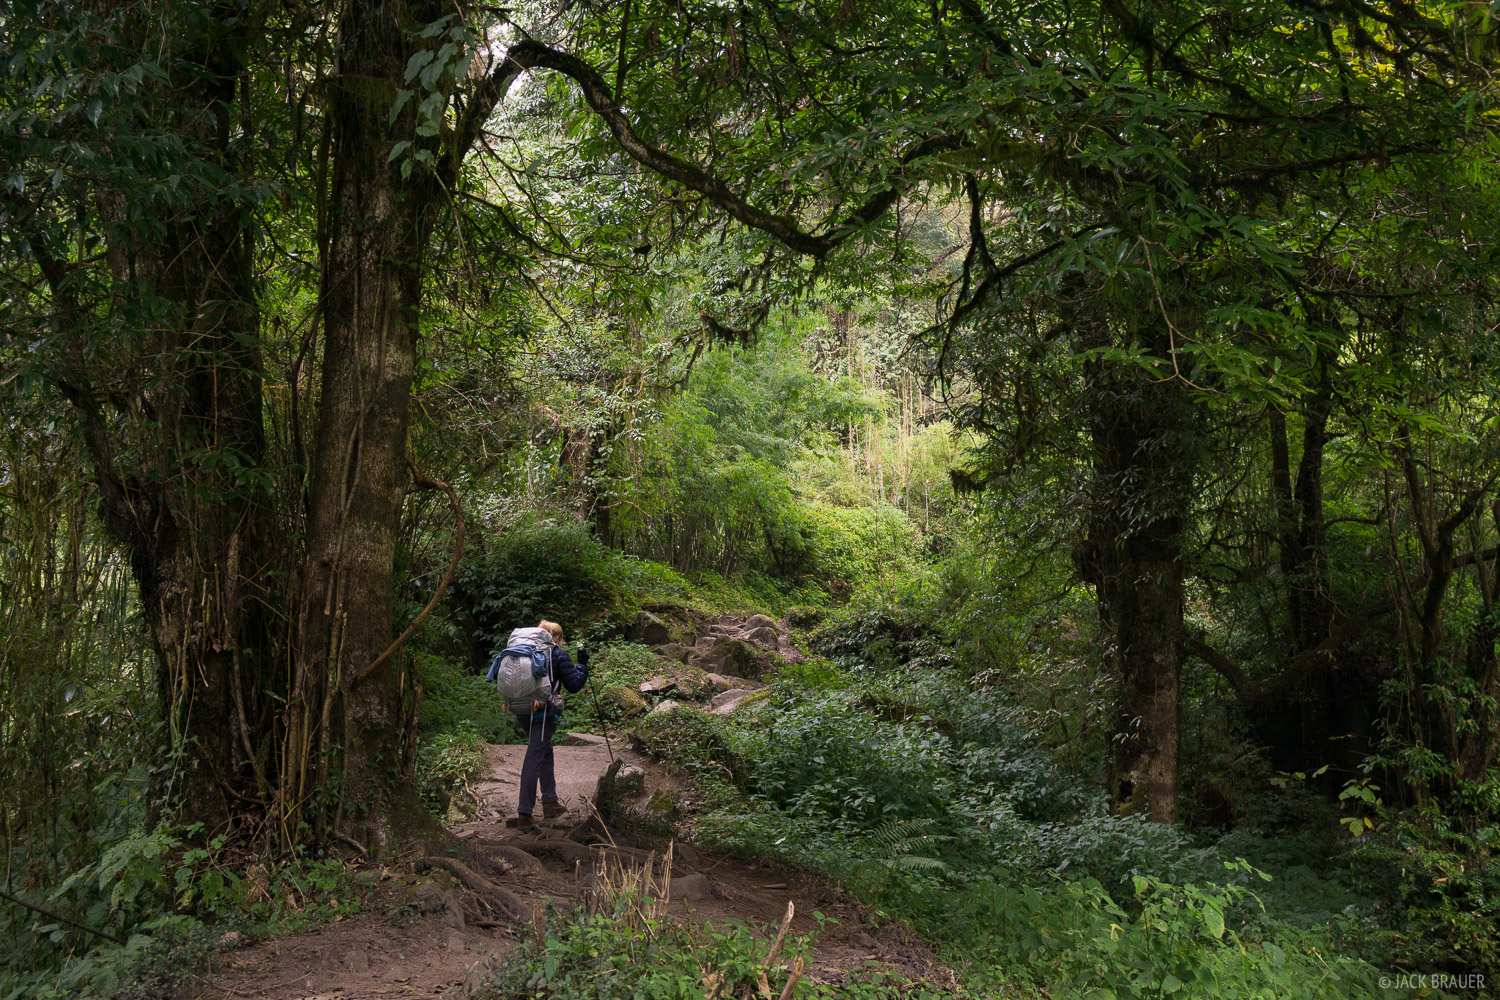 The Modi Khola gorge is filled with lush jungle forest, complete with vines, moss, and monkeys.